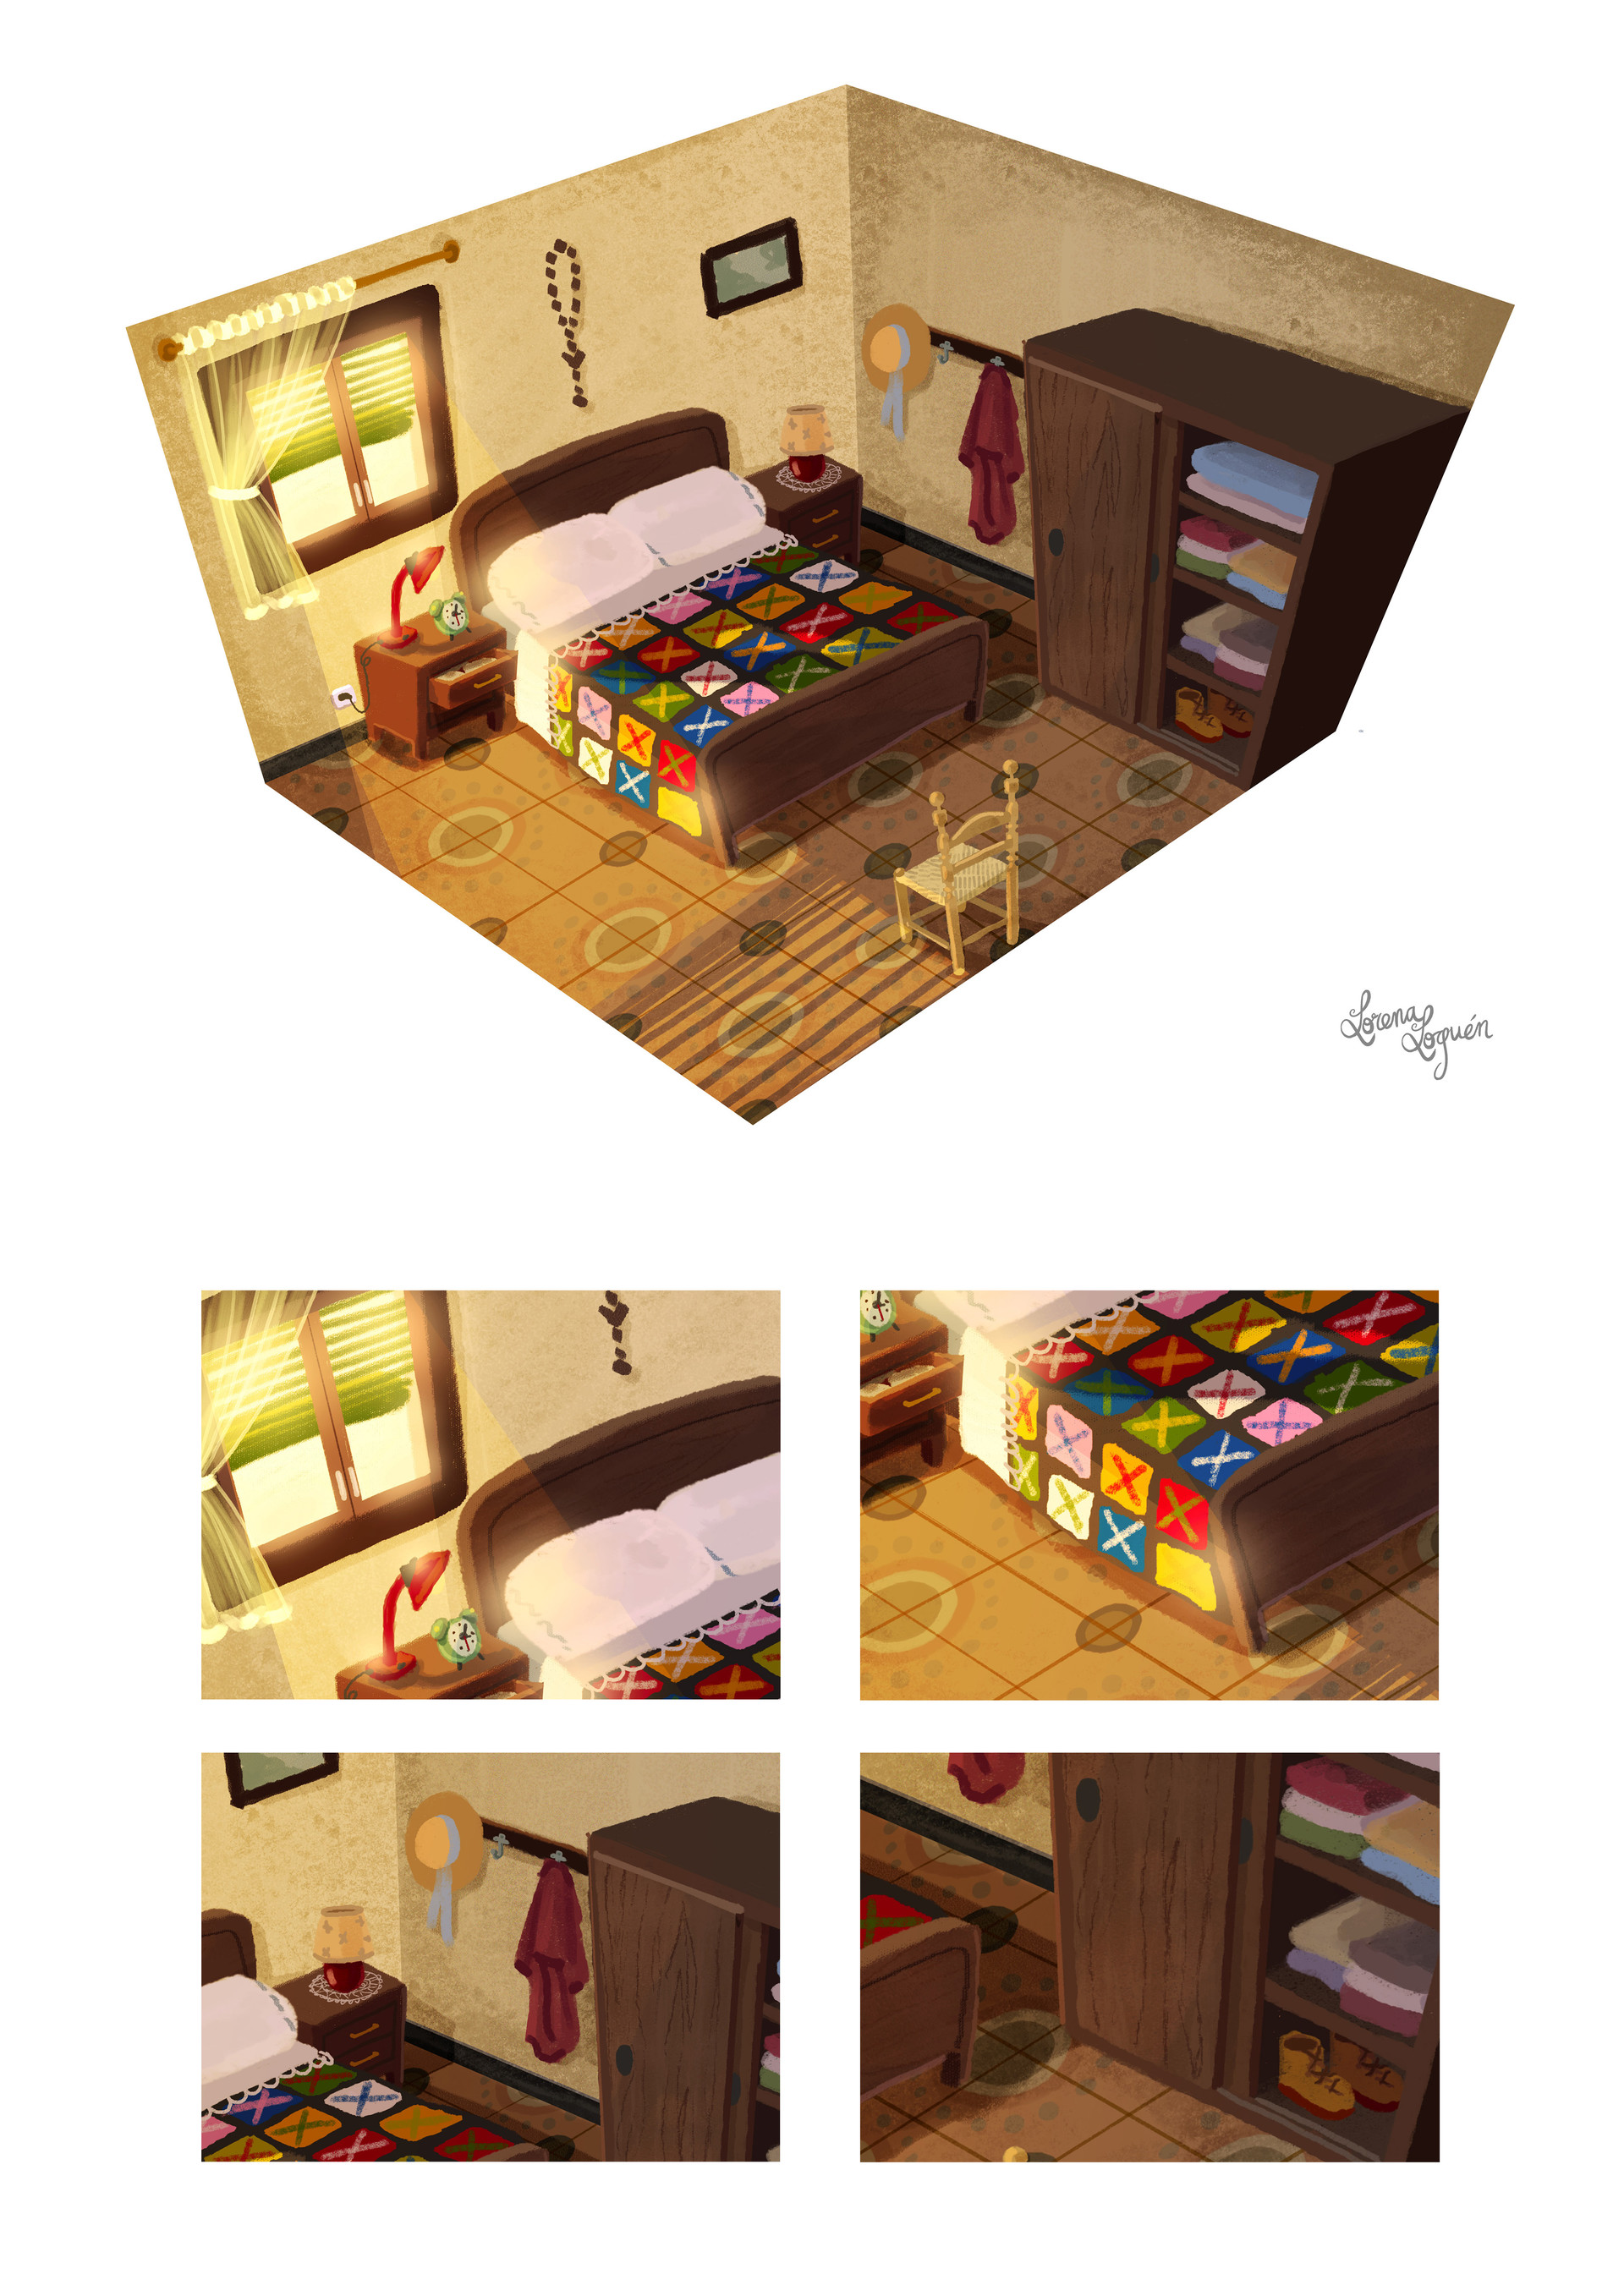 Lorena loguen bedroom concept art by lorena loguen steps 04